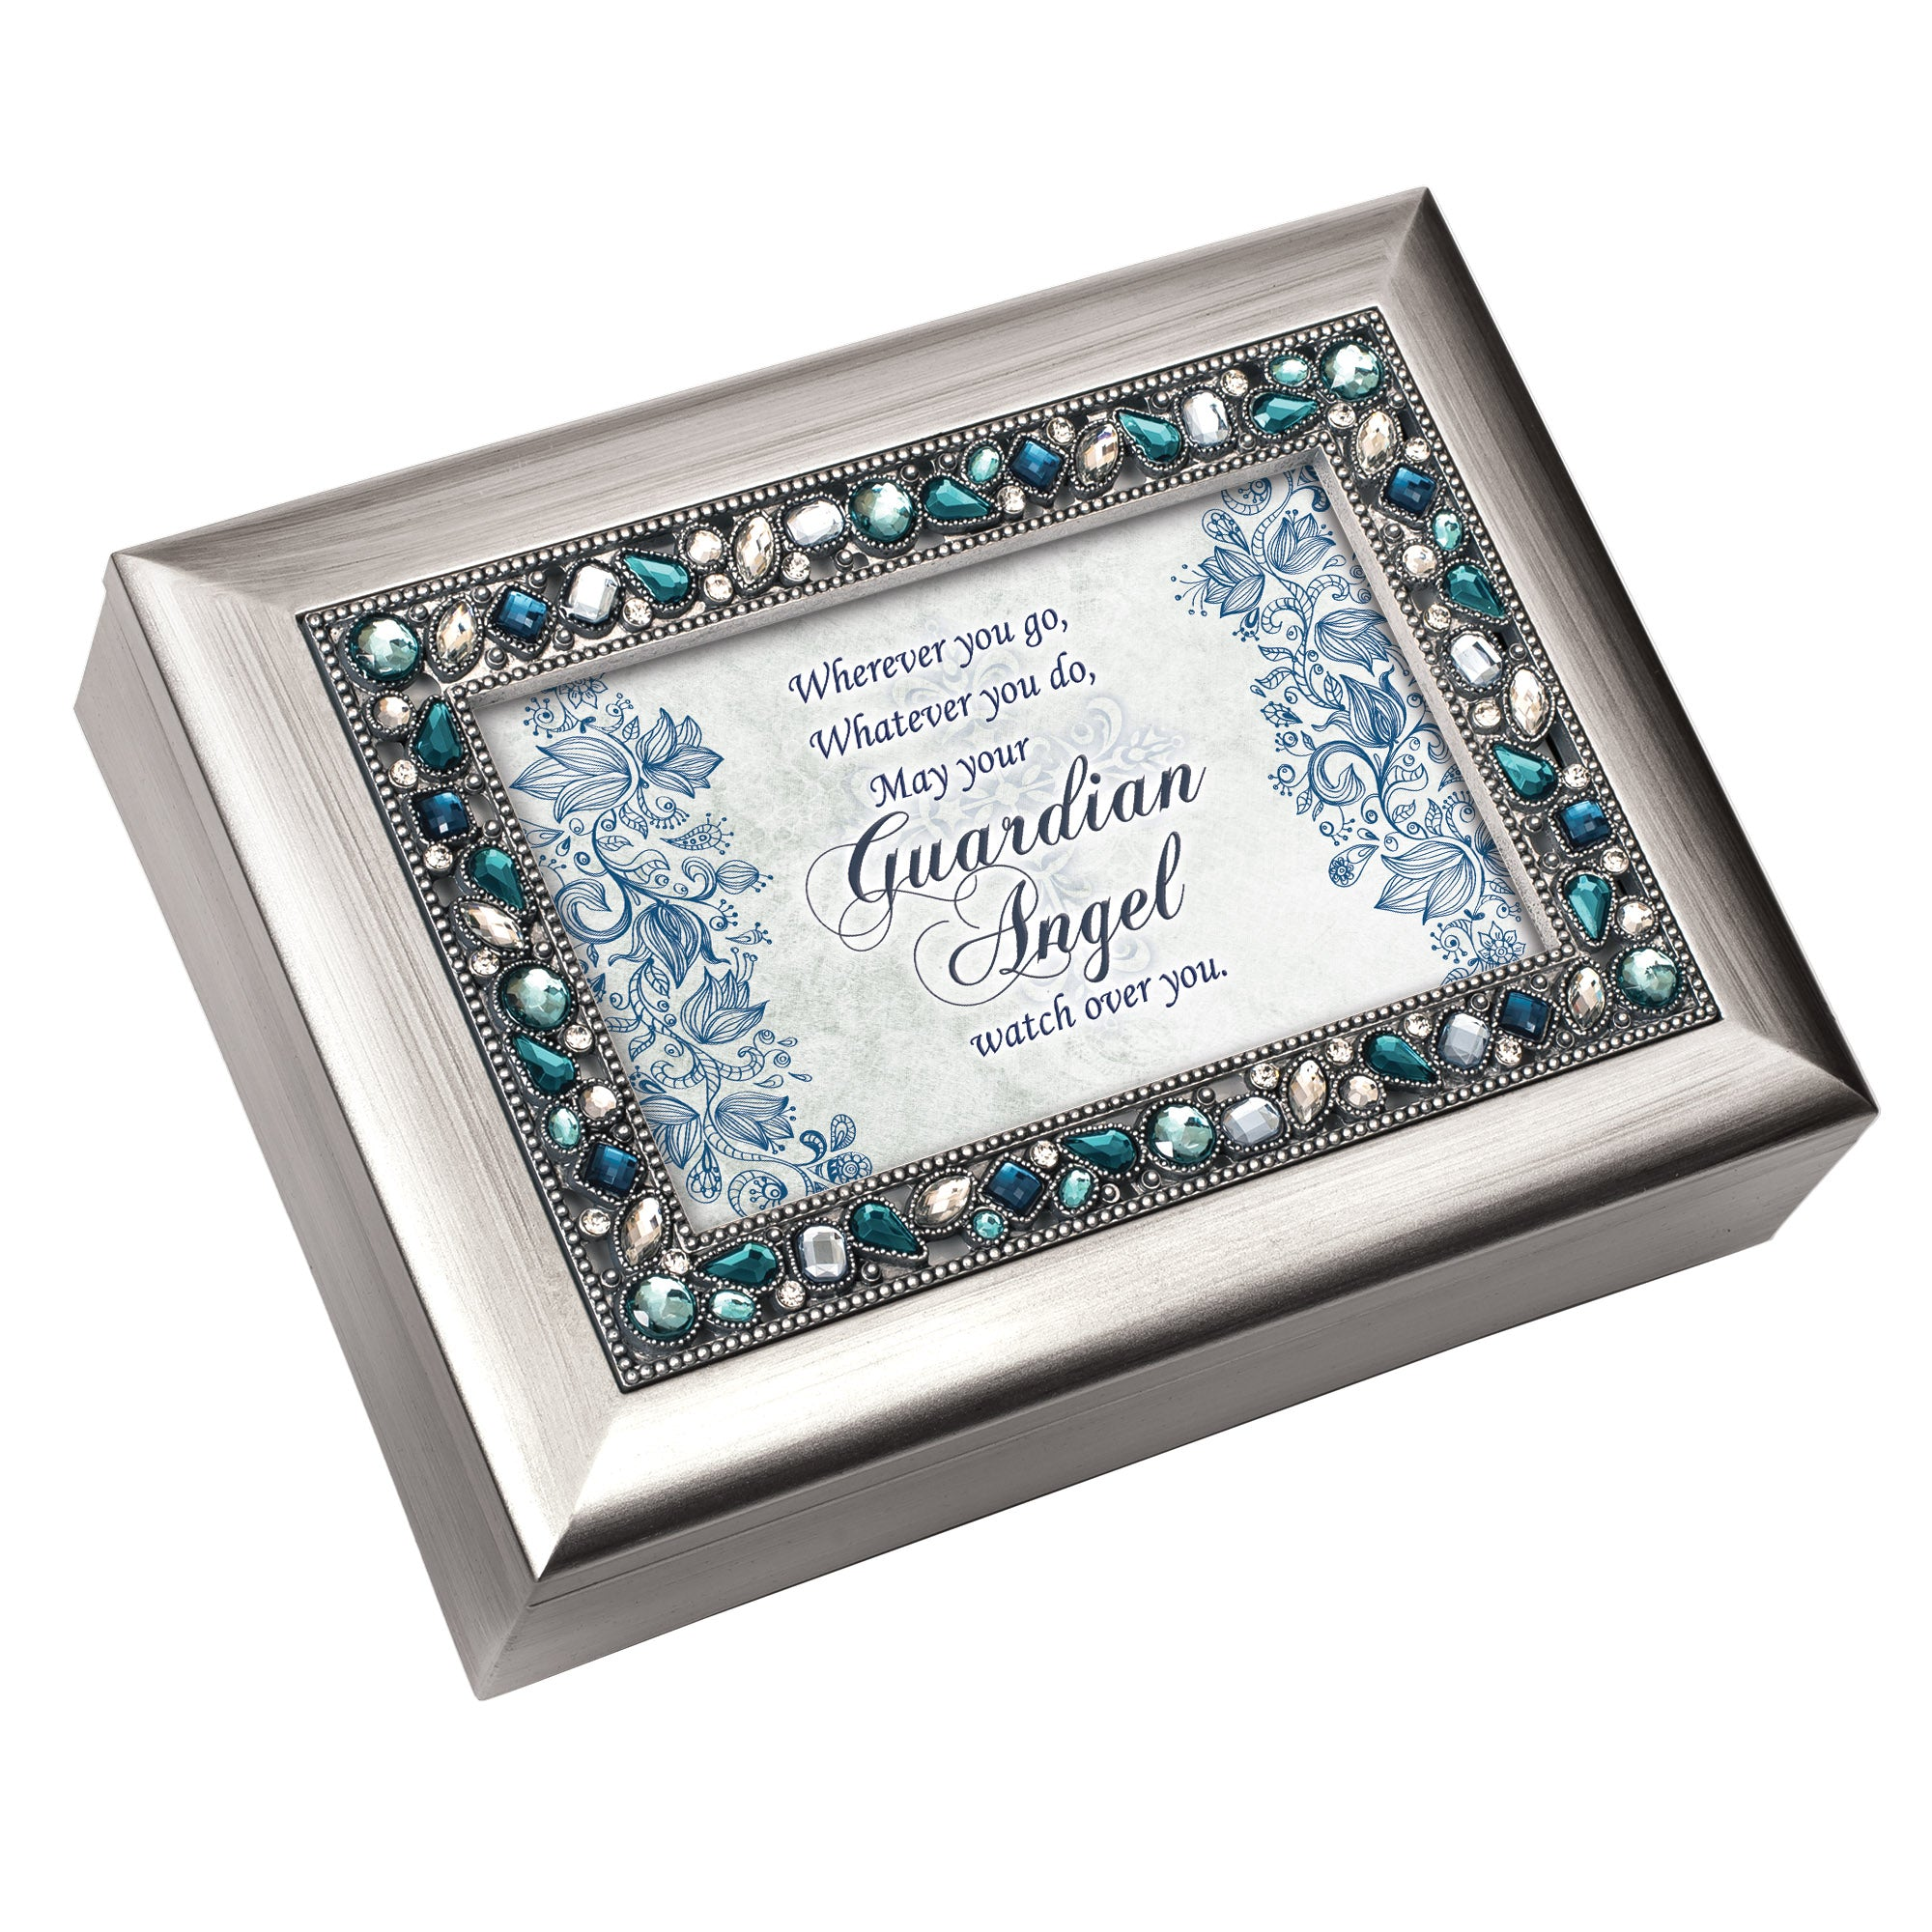 GUARDIAN ANGEL WATCH OVER YOU MUSIC BOX